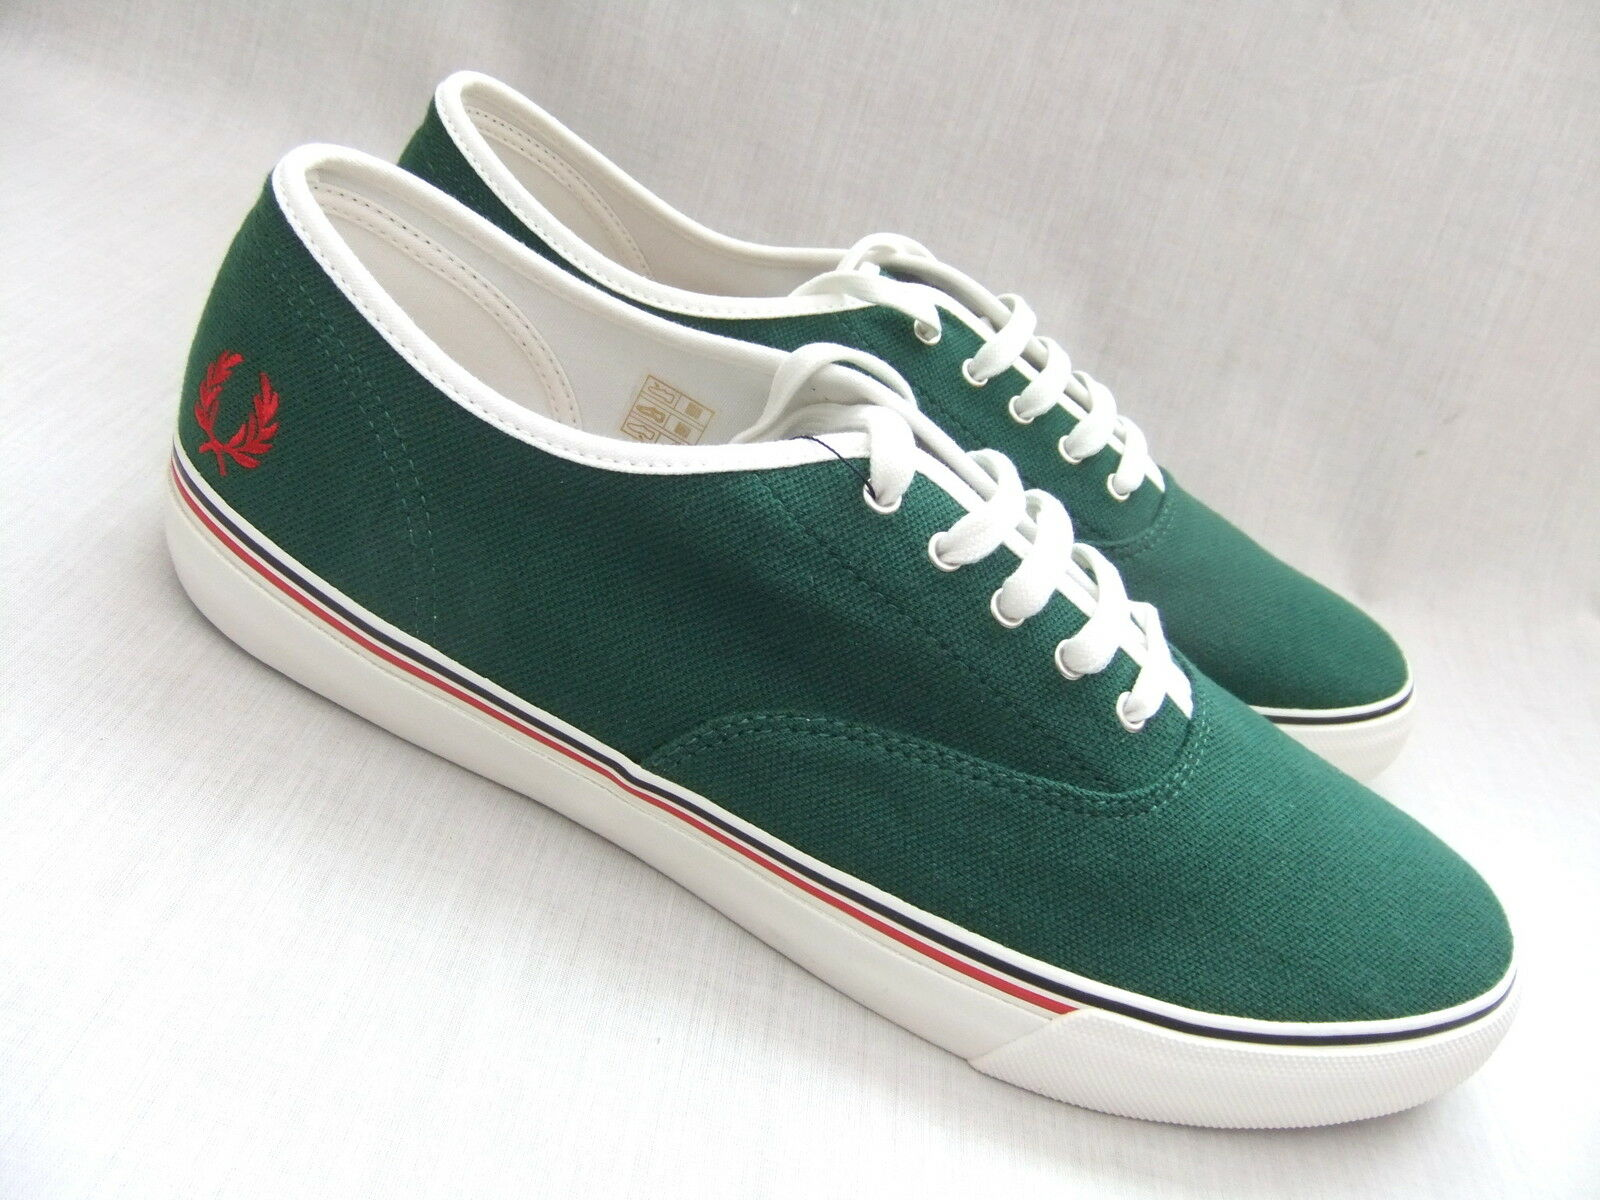 NEUF FRED PERRY B4251 Clarence homme pique Vert Toile Baskets